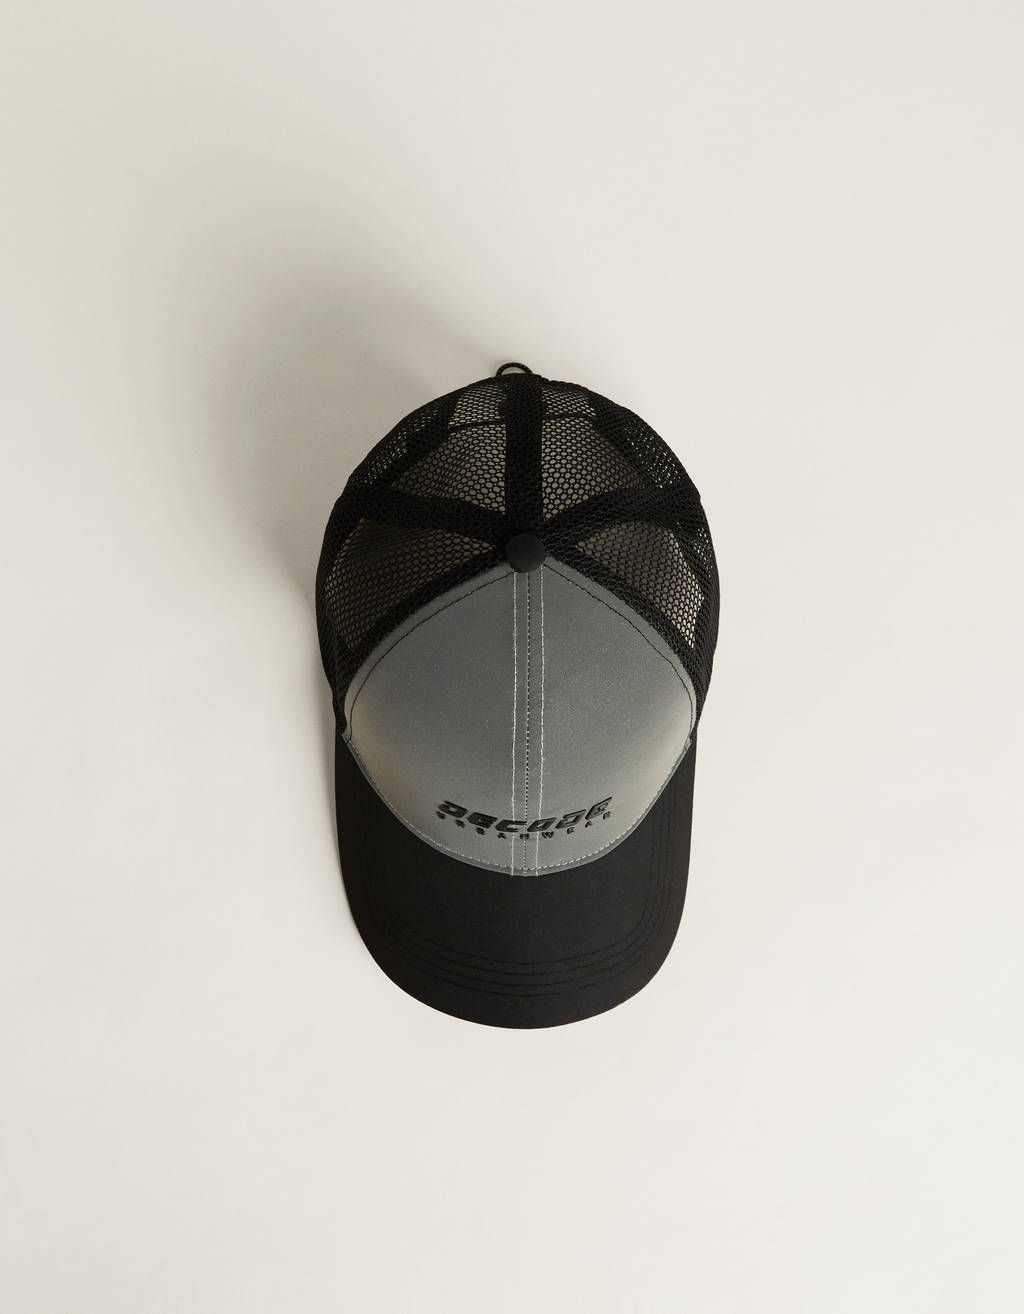 Reflective cap with graphic design